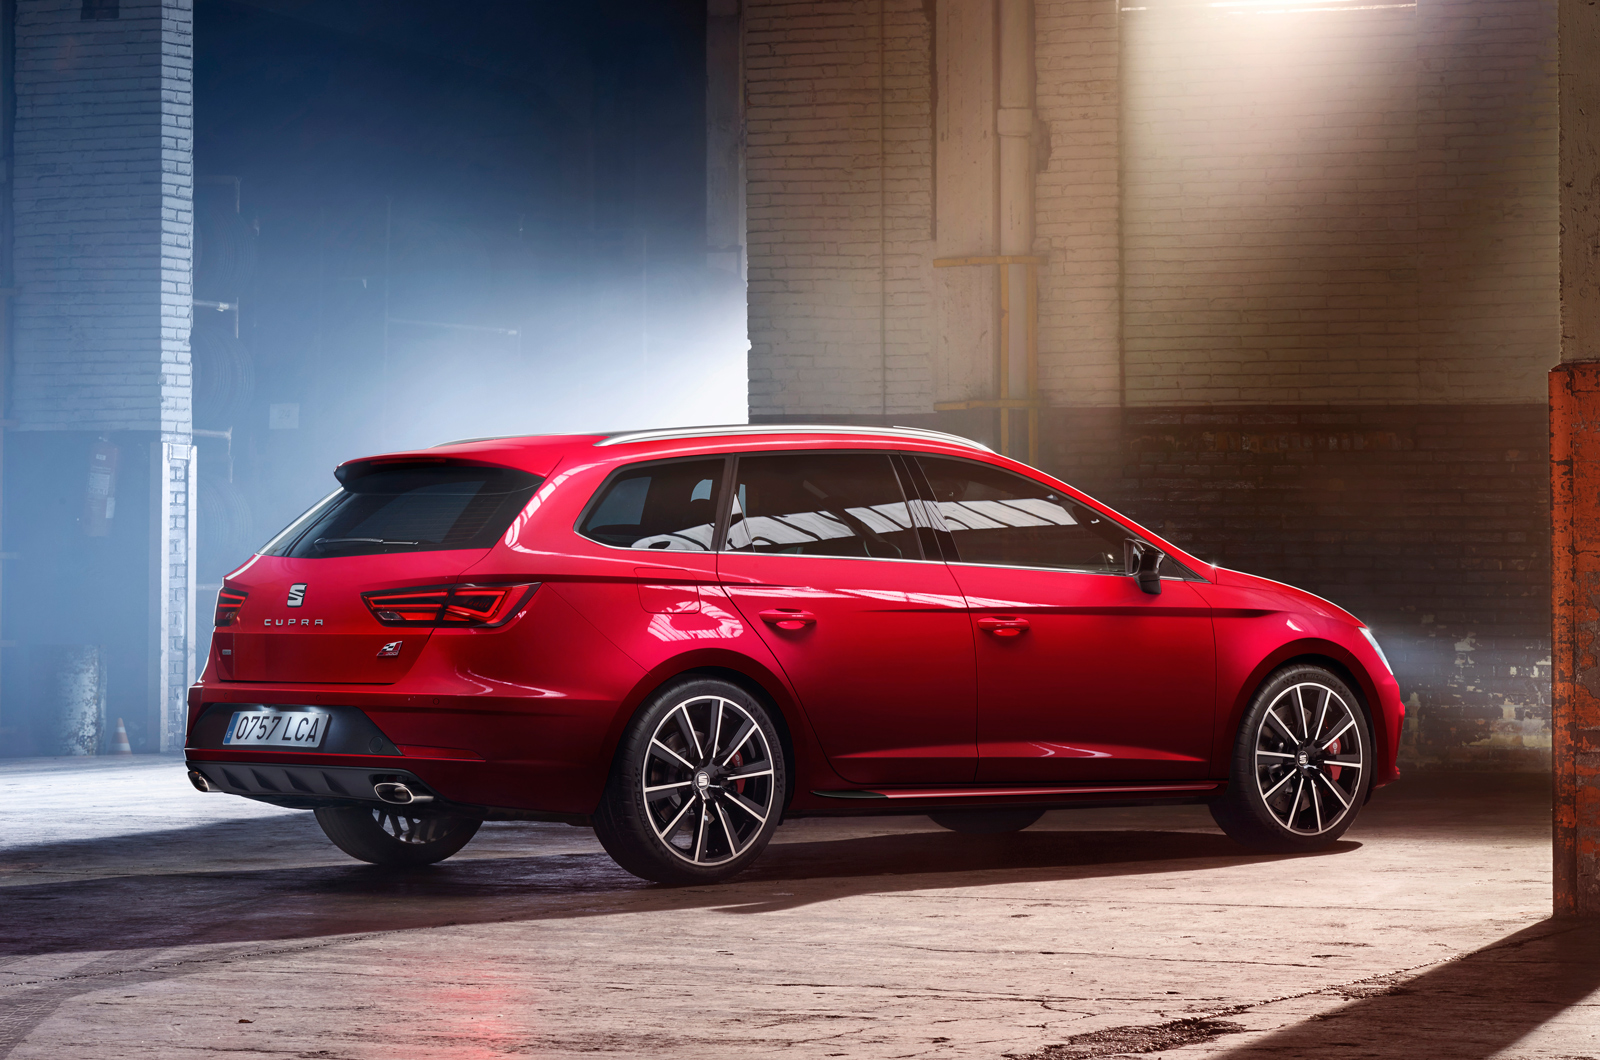 2017 seat leon cupra 300 296bhp and new all wheel drive estate autocar. Black Bedroom Furniture Sets. Home Design Ideas